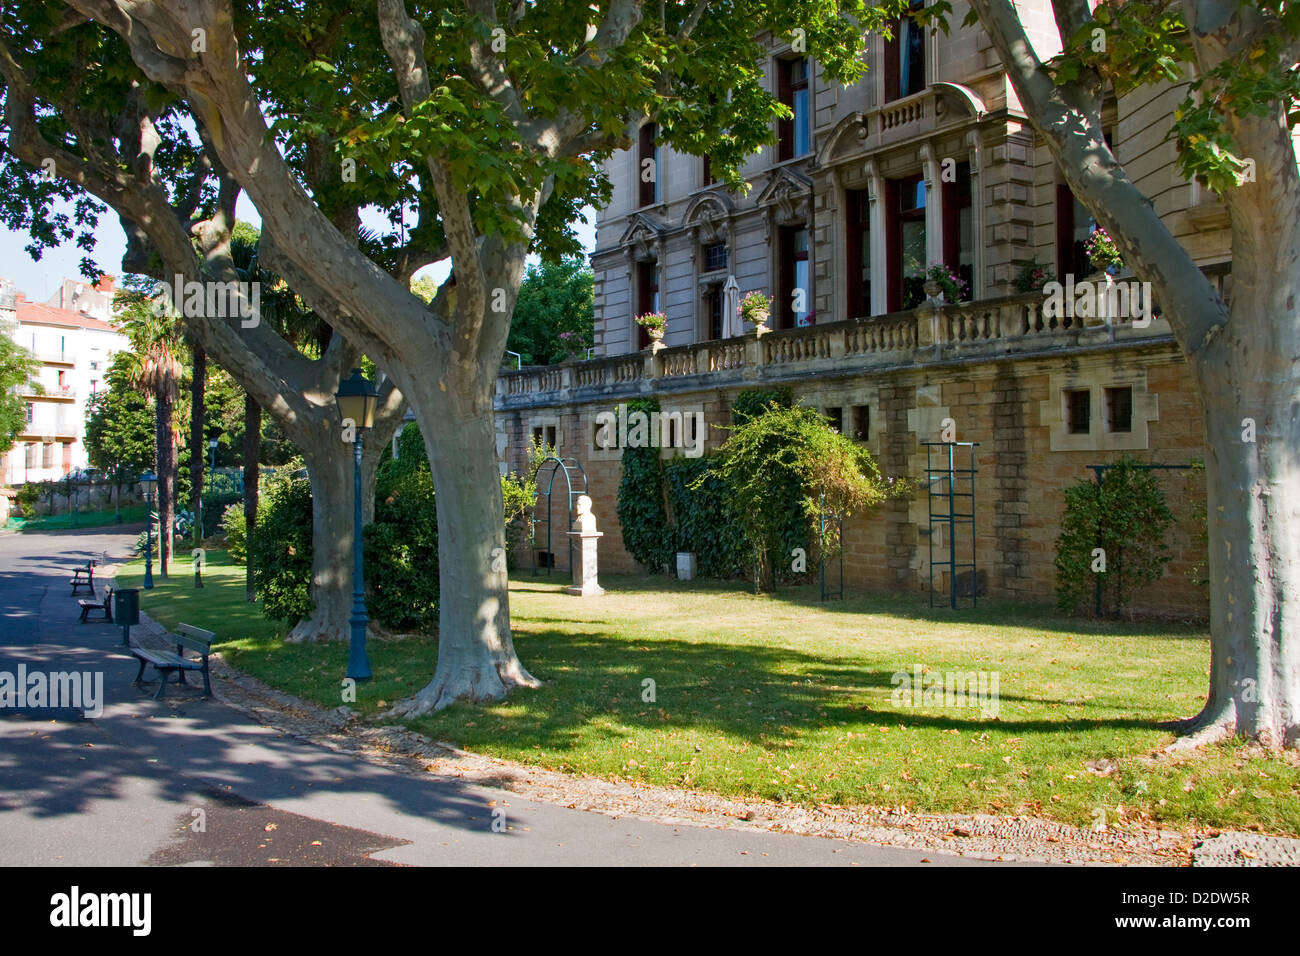 Building with imposing facade on the edge of the Parc des Poètes, Beziers, Laguedoc, France - Stock Image